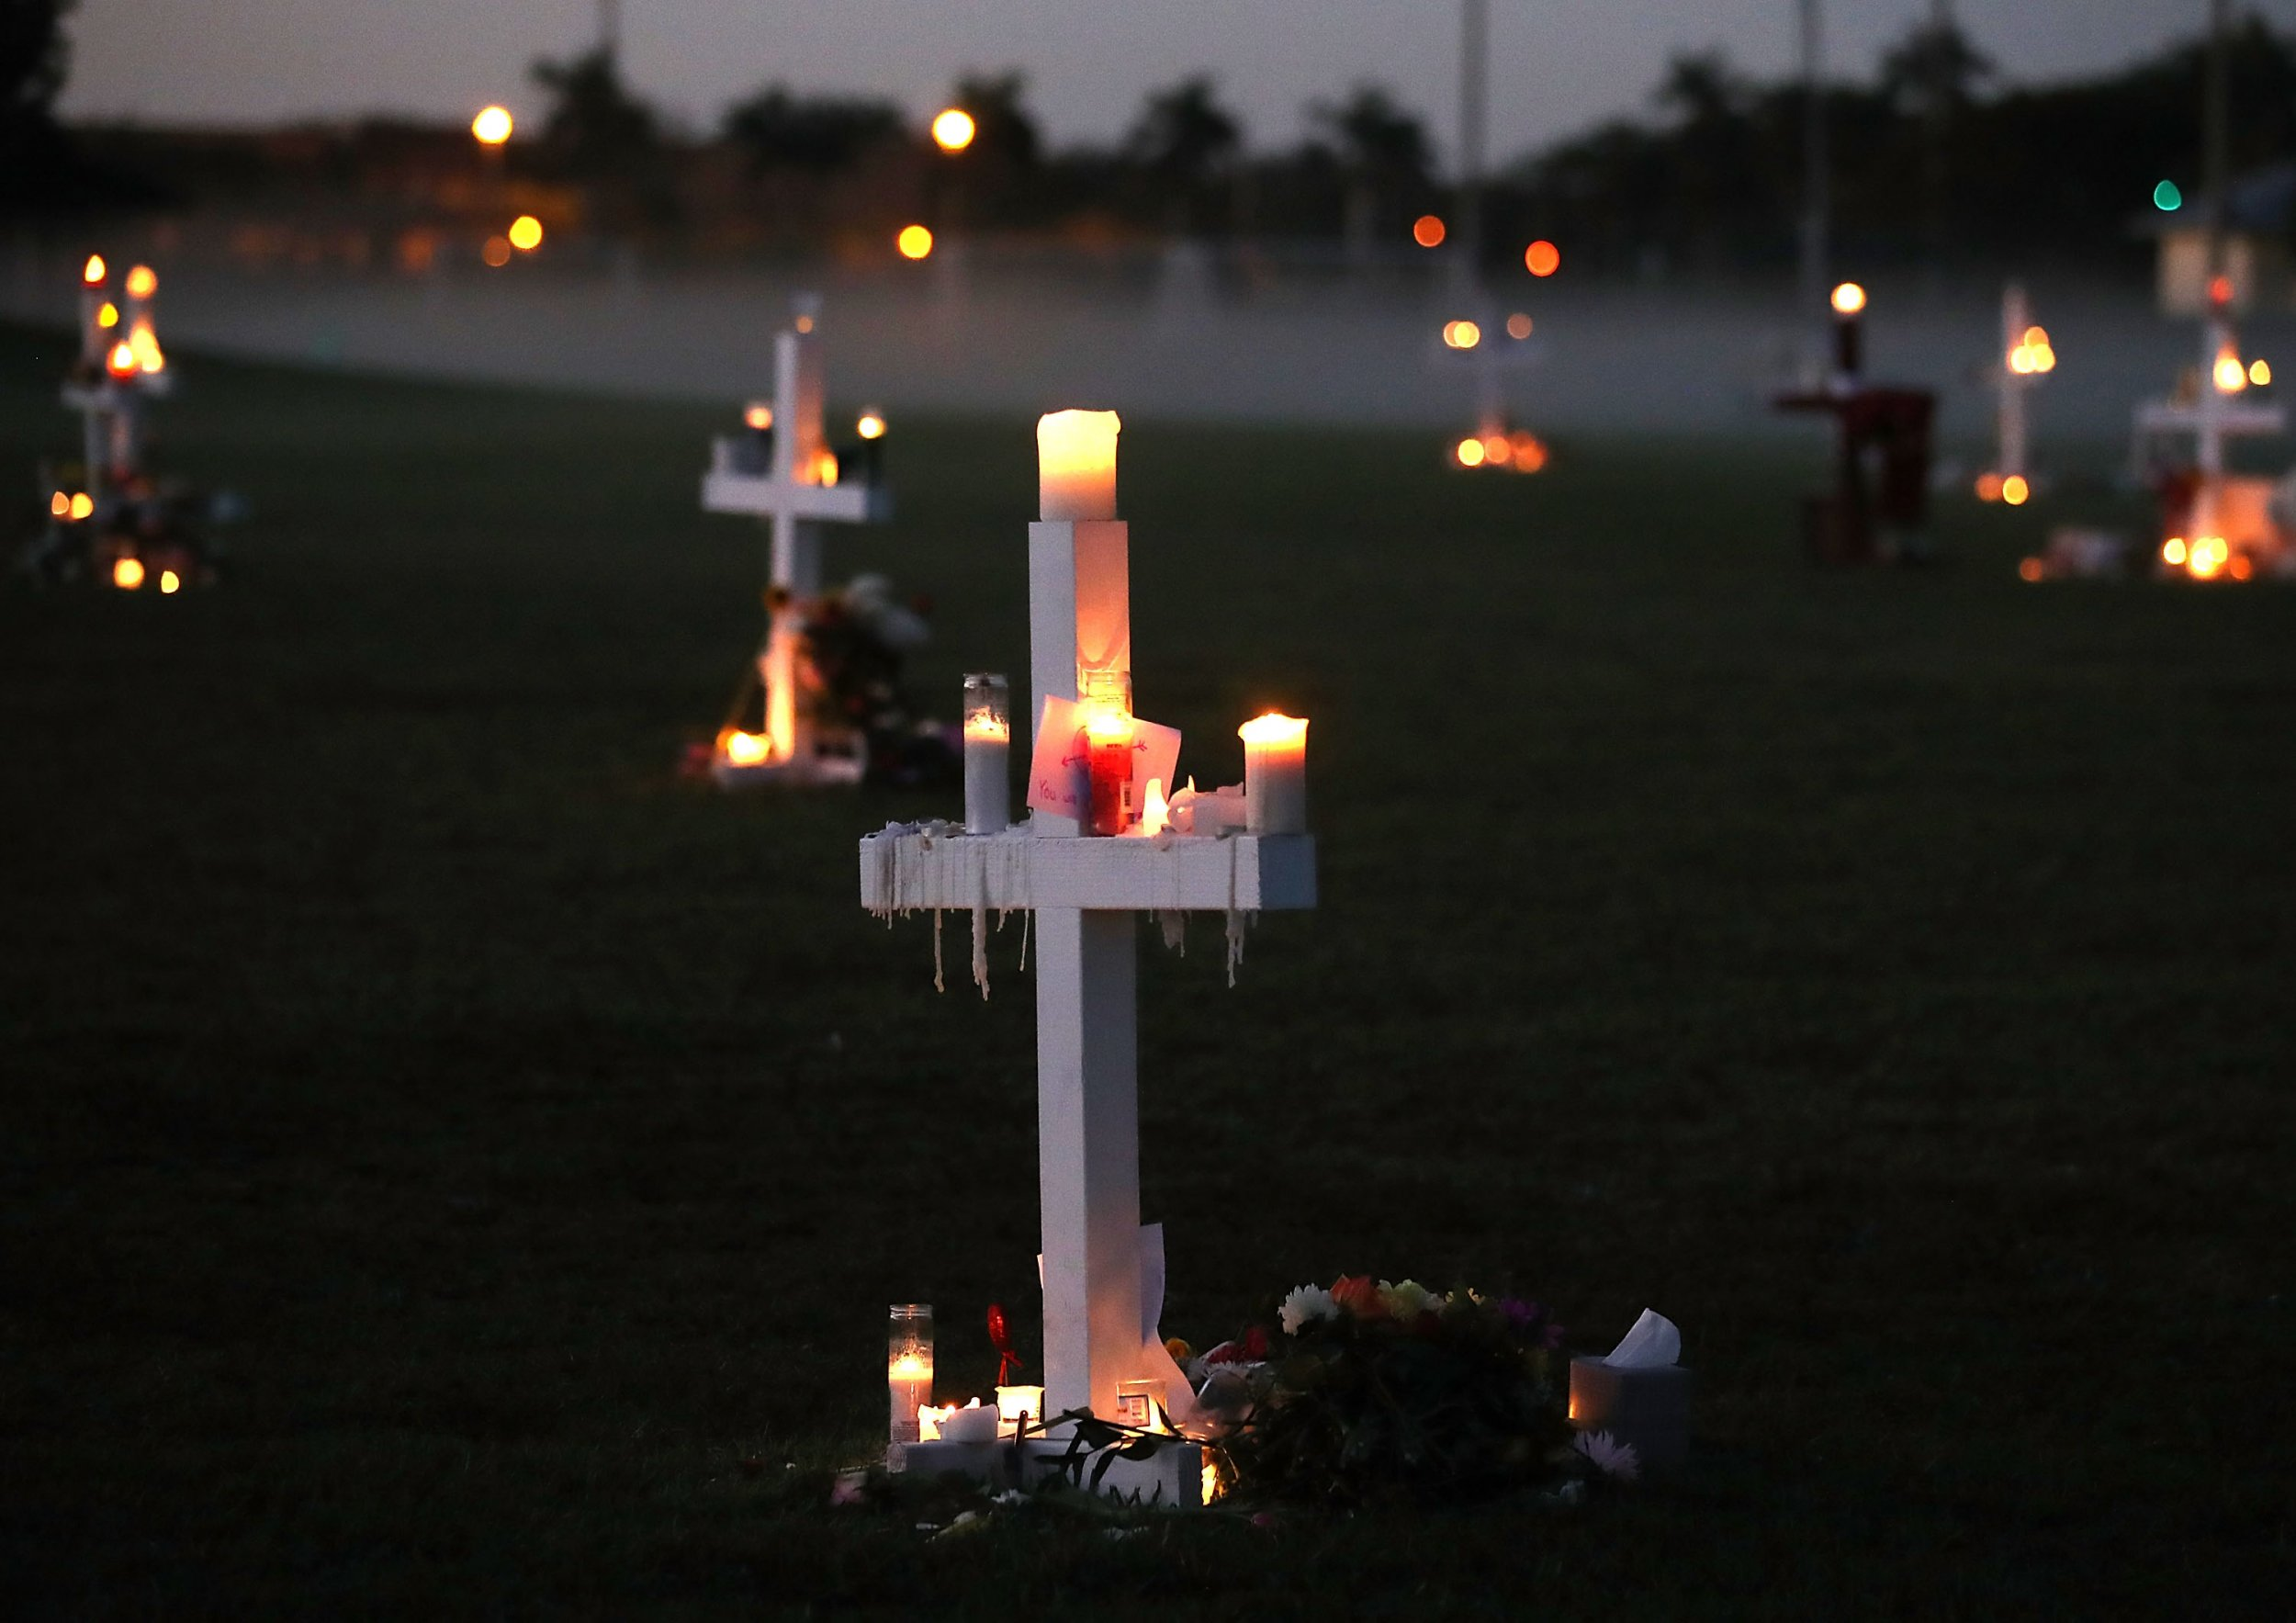 parkland shooting survivors guilt where to go for help